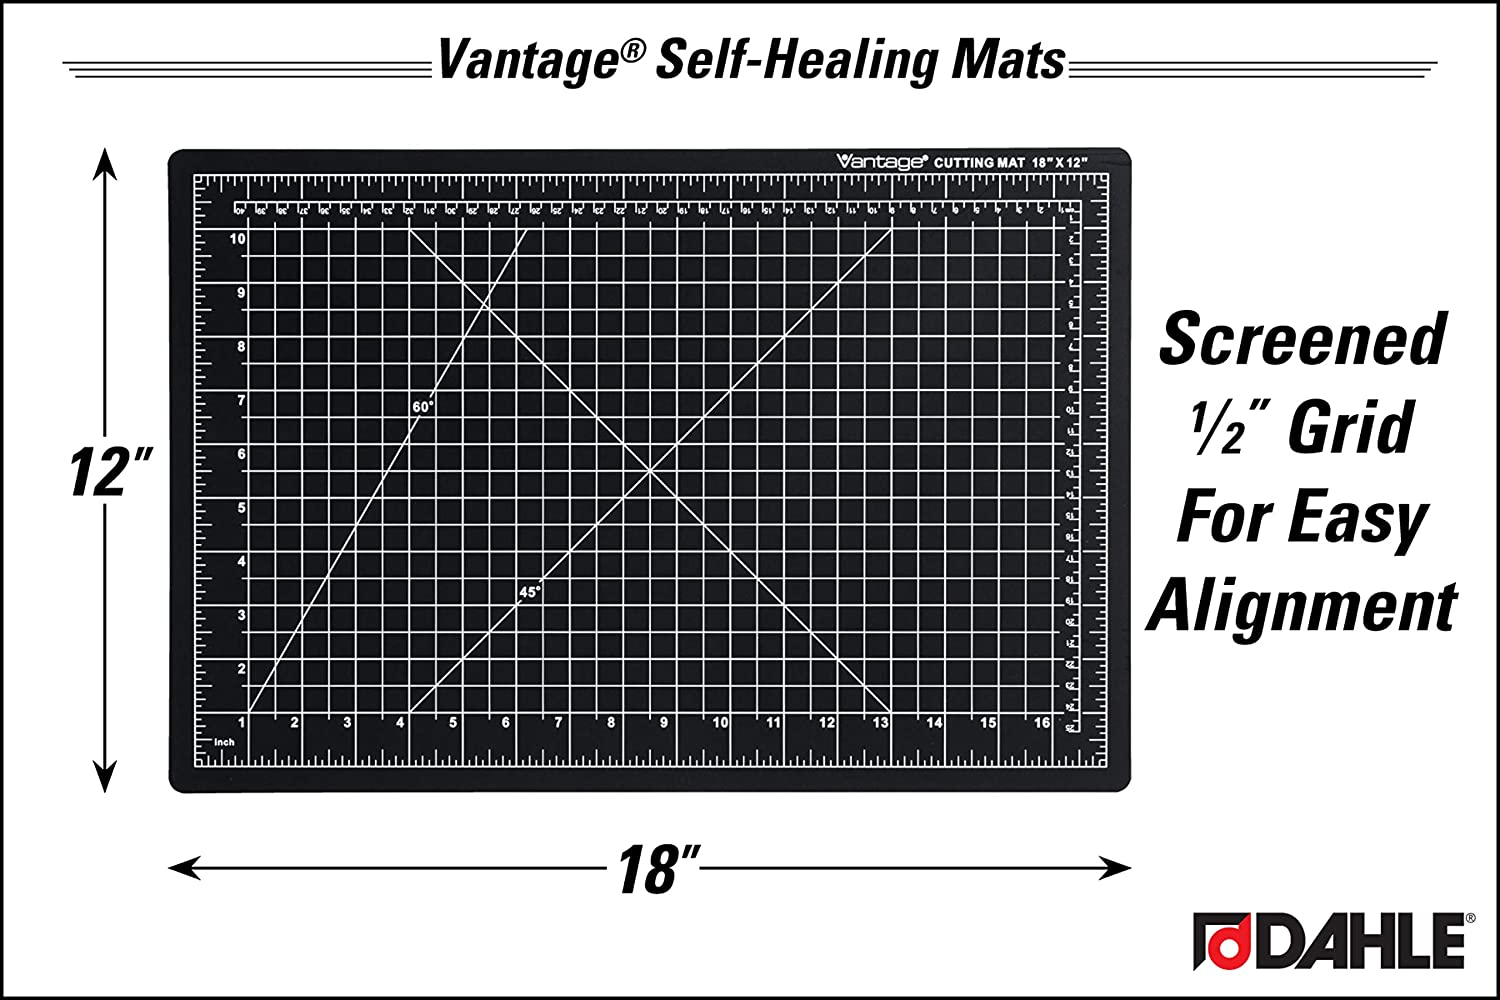 Dahle Vantage 10690 Self-Healing 5-Layer Cutting Mat Perfect for Crafts and Sewing 9 x 12 Blue Mat